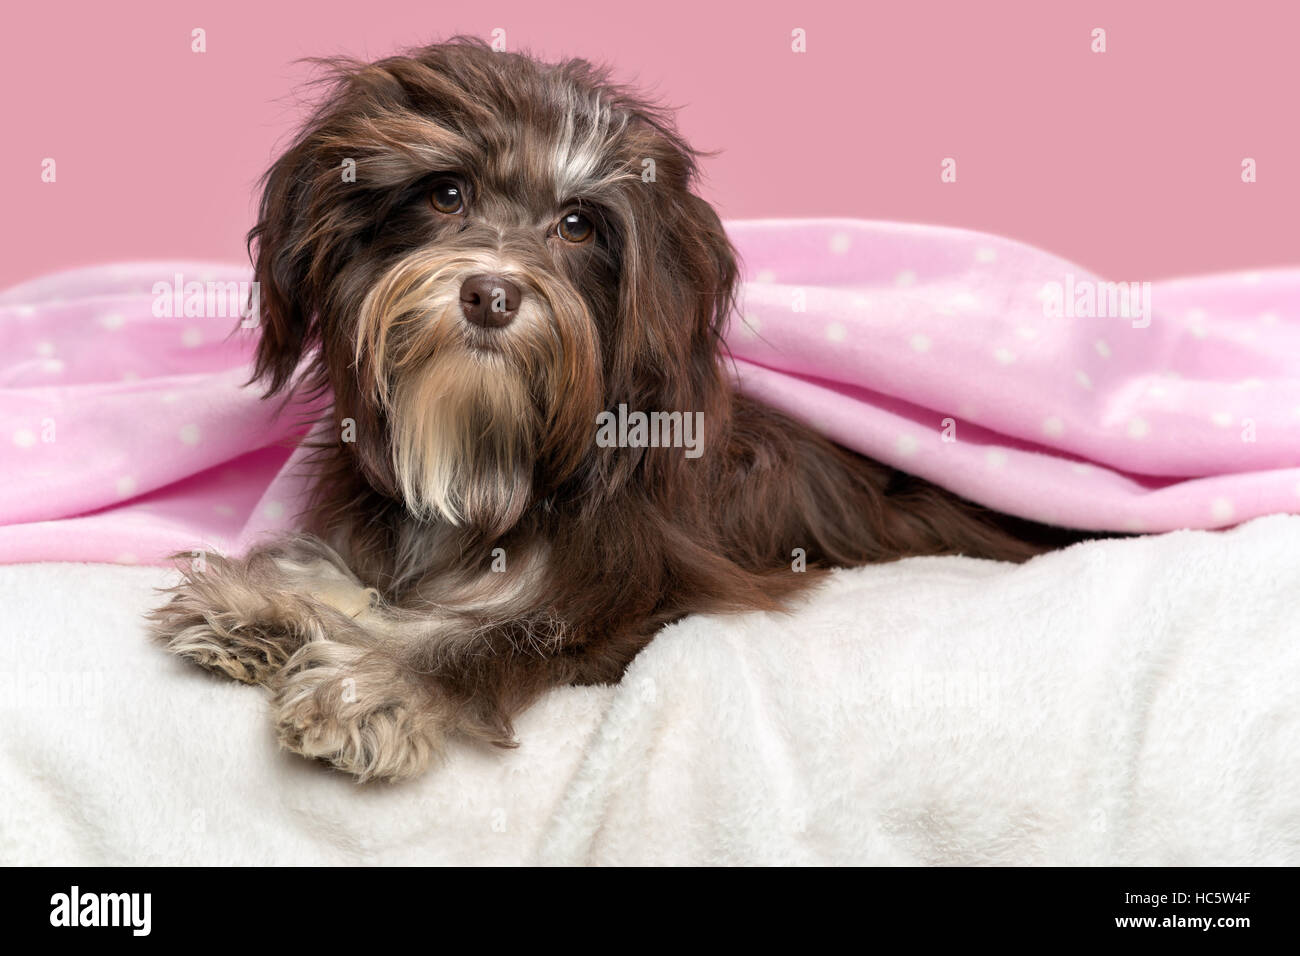 Cute lying chocolate Havanese dog in a bed under a pink blanket, before a mauve background - Stock Image